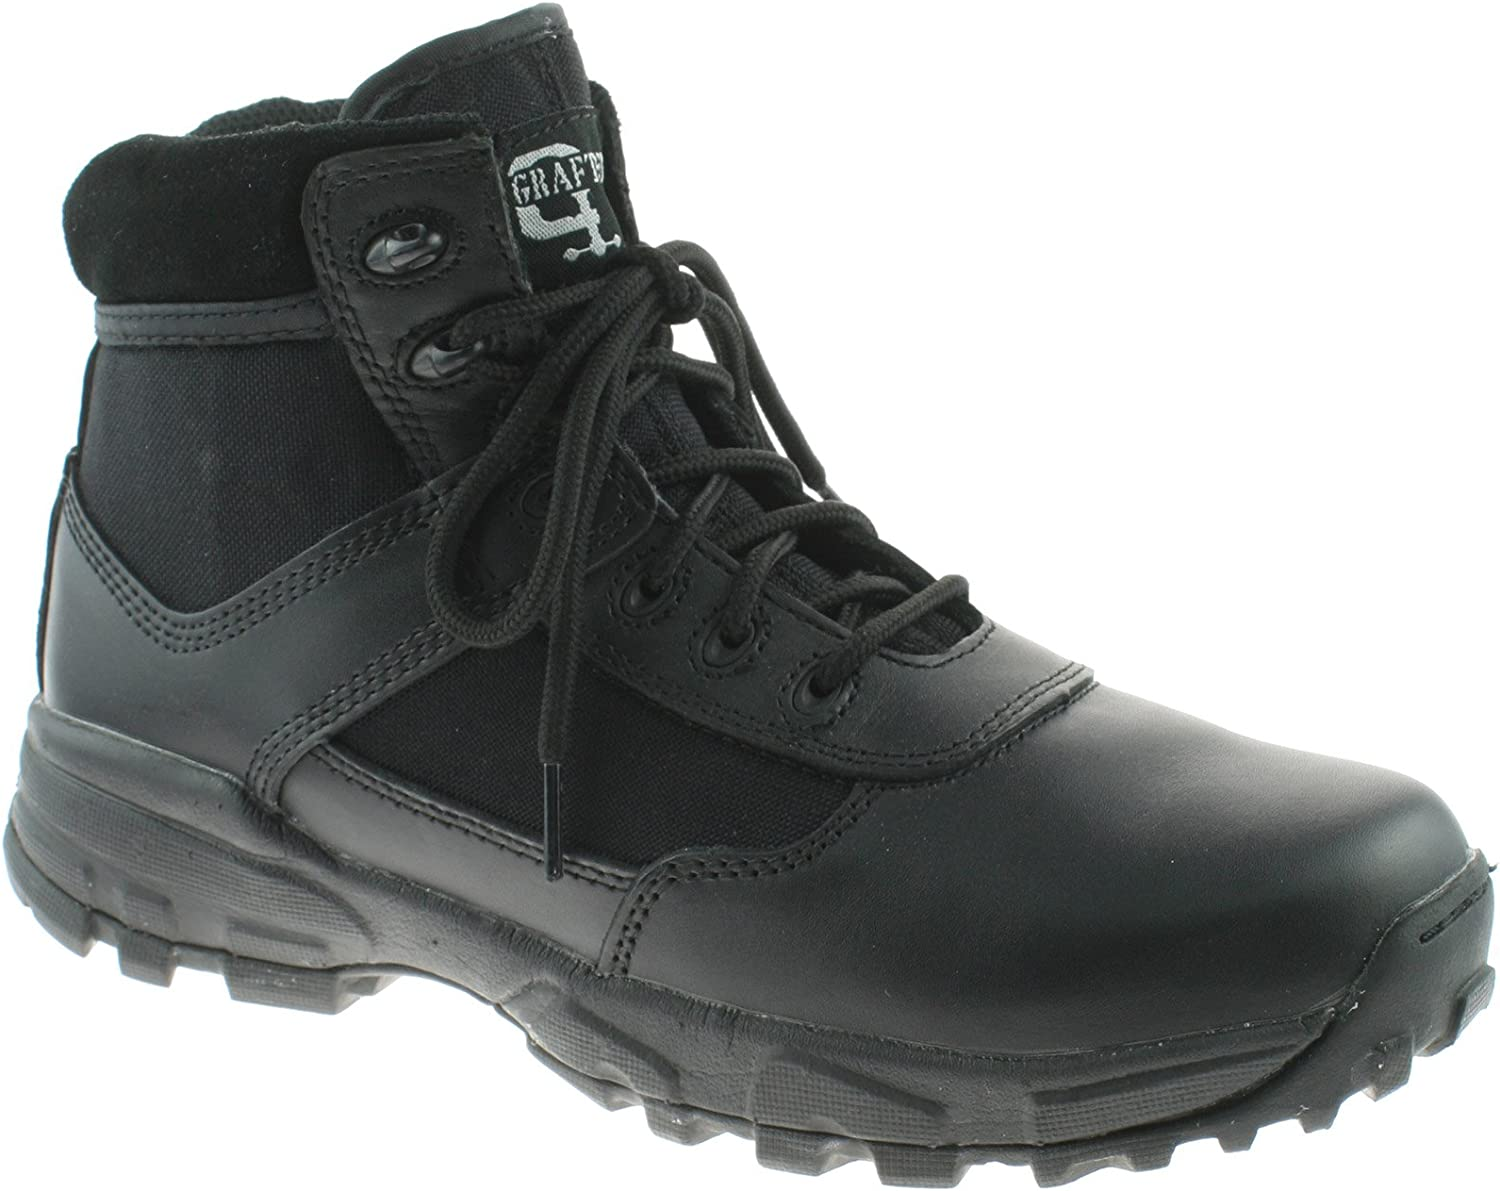 Grafters Stealth Boot 6 inch M497A